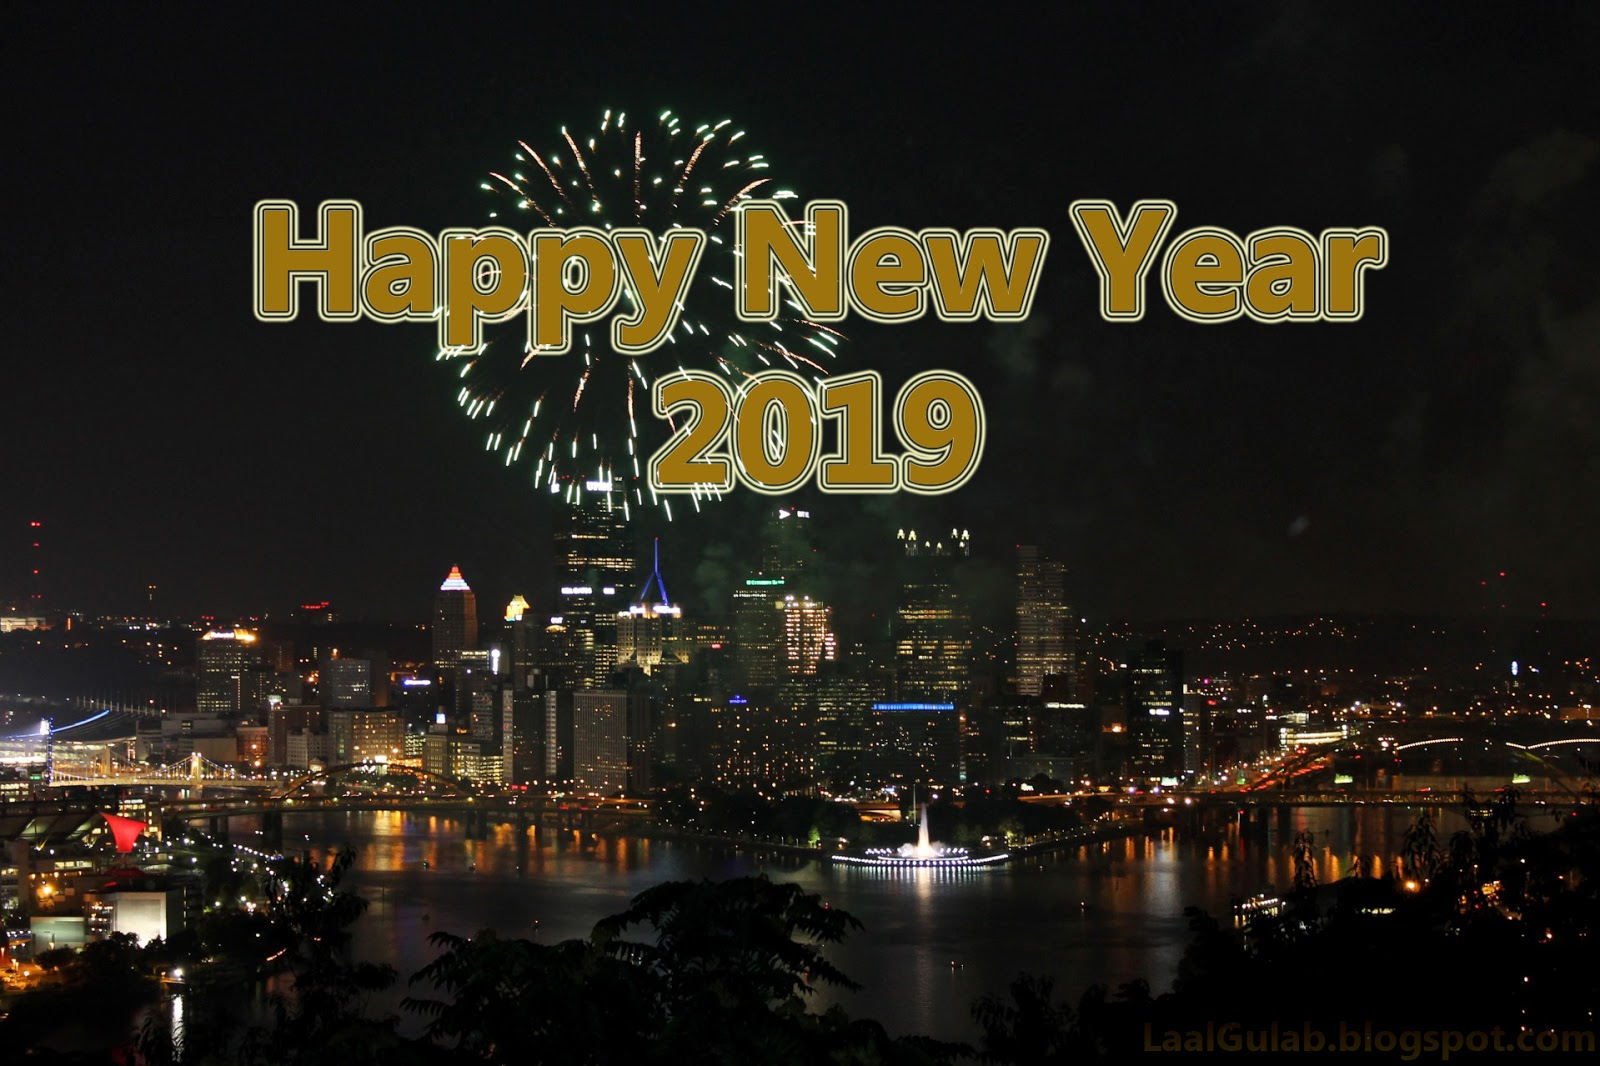 Happy New Year 2019 Wallpapers HD Images 2019 Happy New Year 2019 Wallpapers